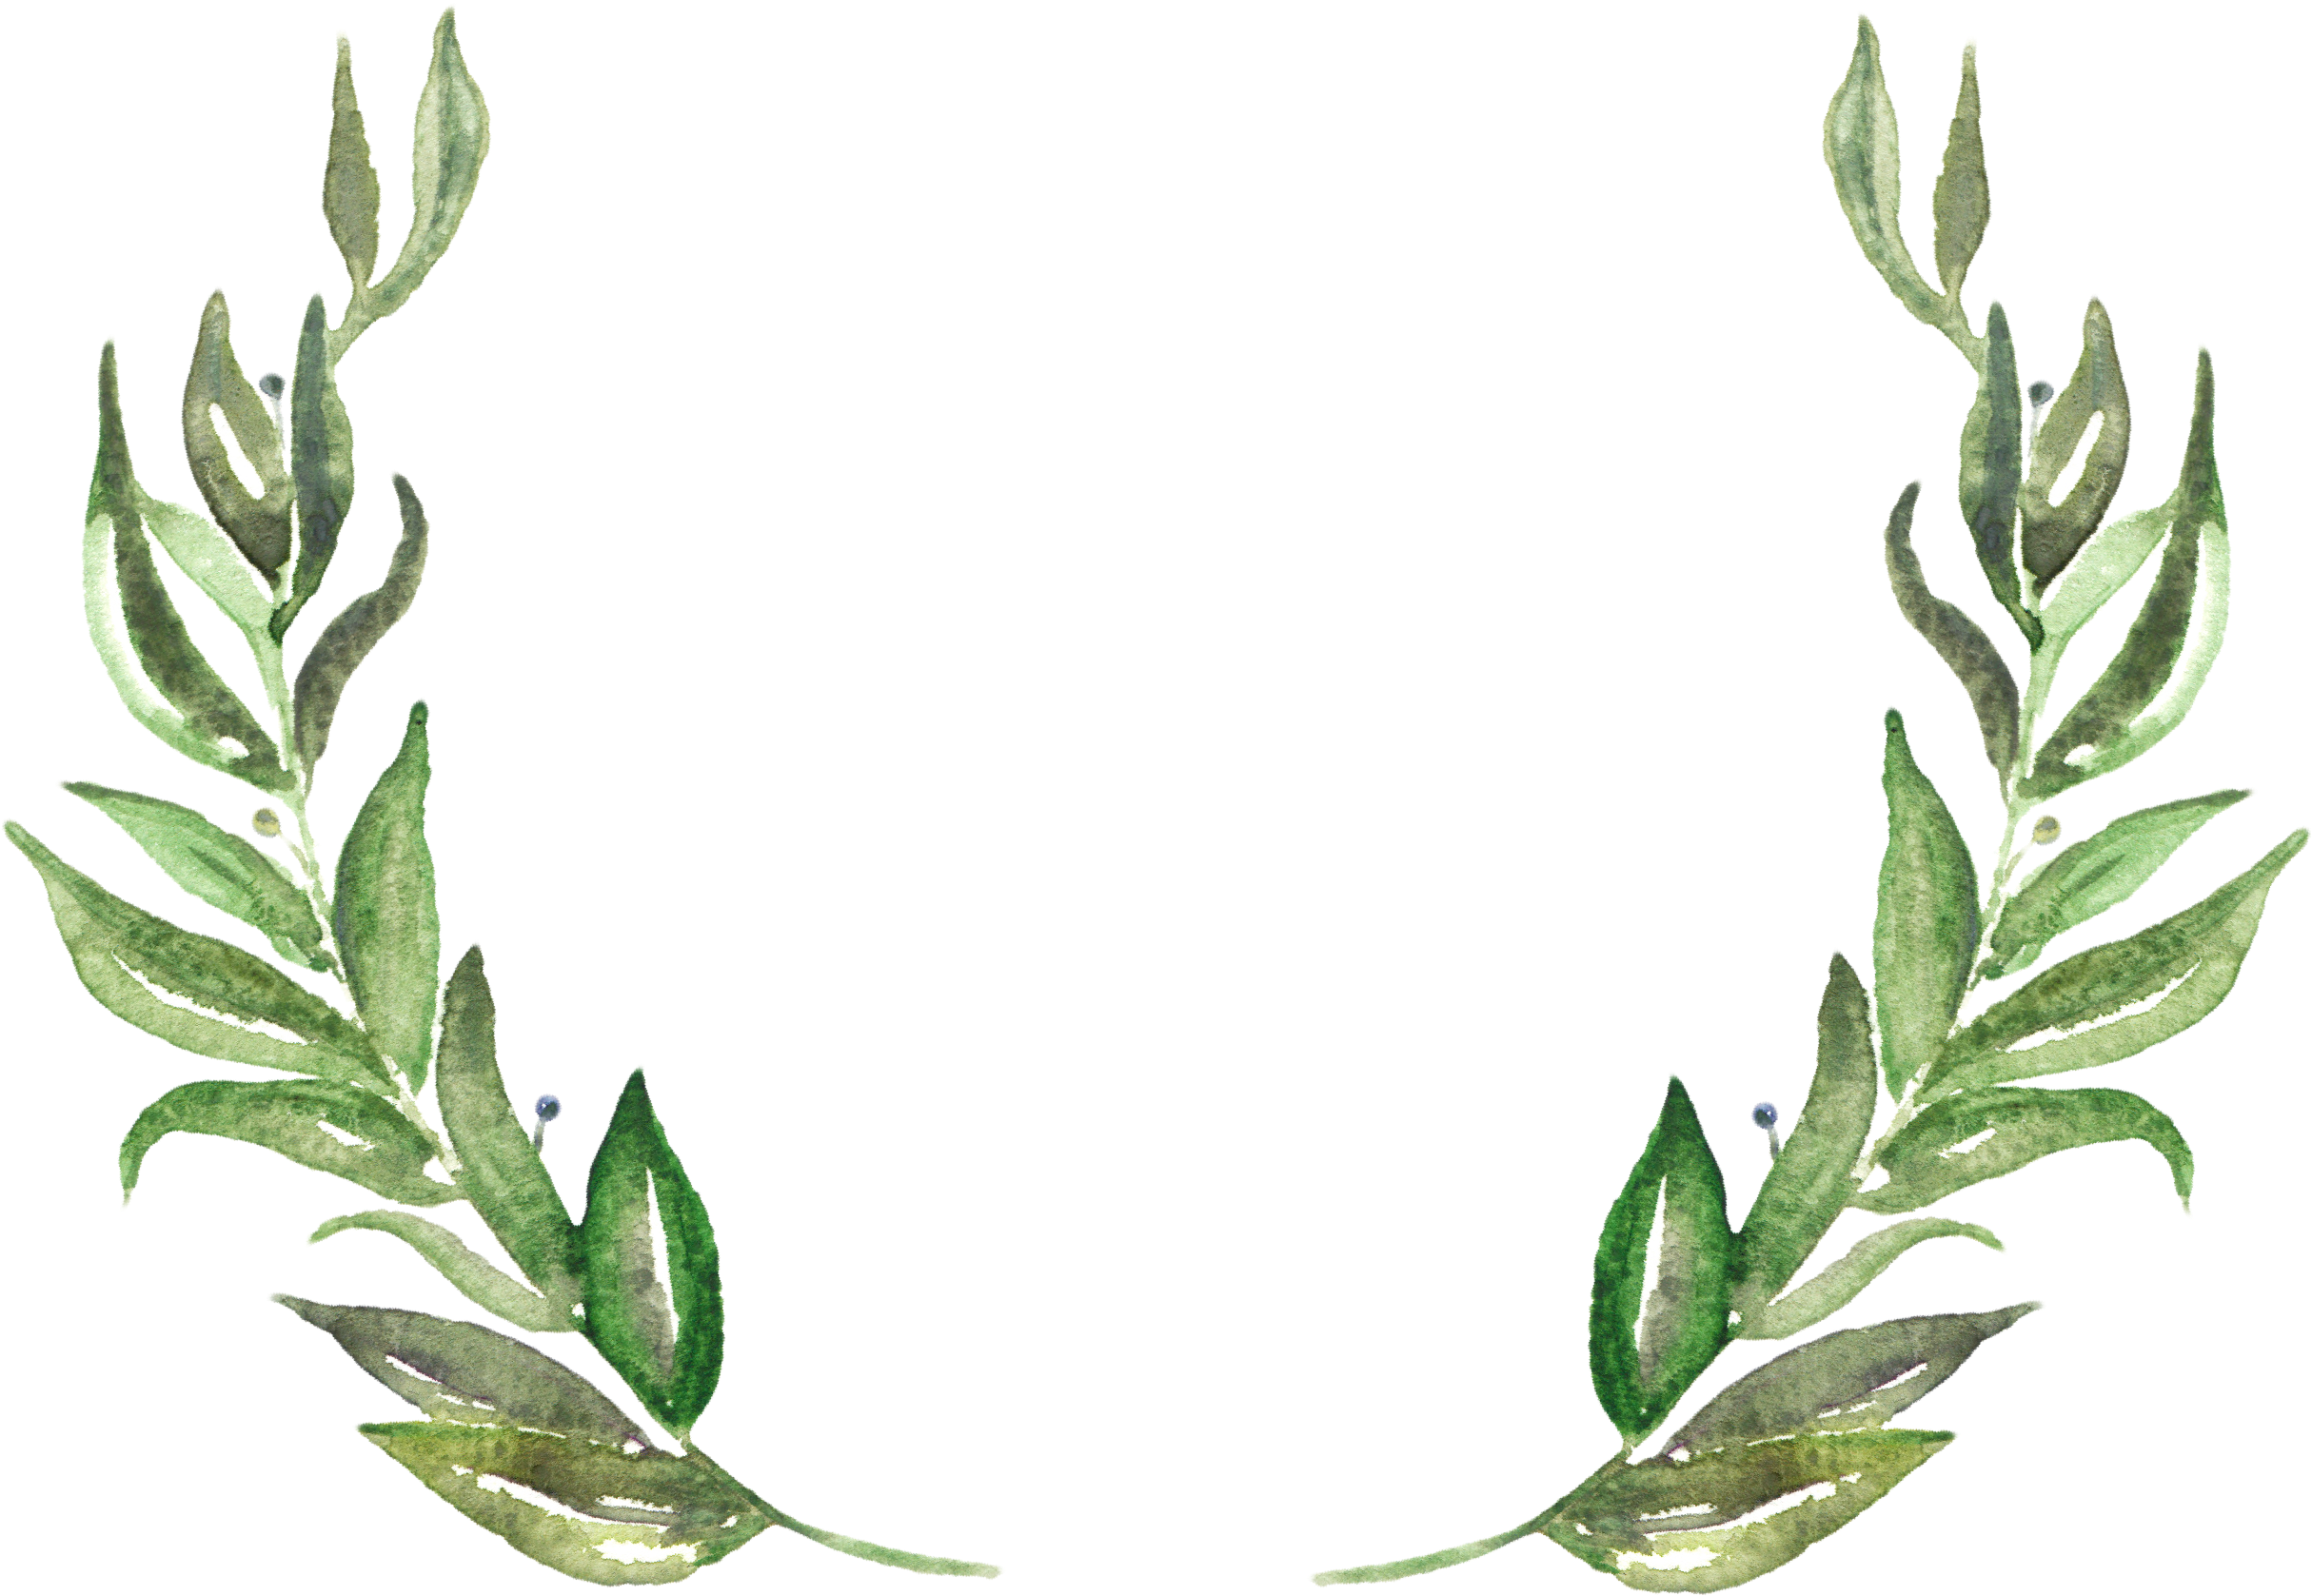 Download Leaves Png Wedding Grass Png Png Image With No Background Pngkey Com Discover 3320 free leaves png images with transparent backgrounds. leaves png wedding grass png png